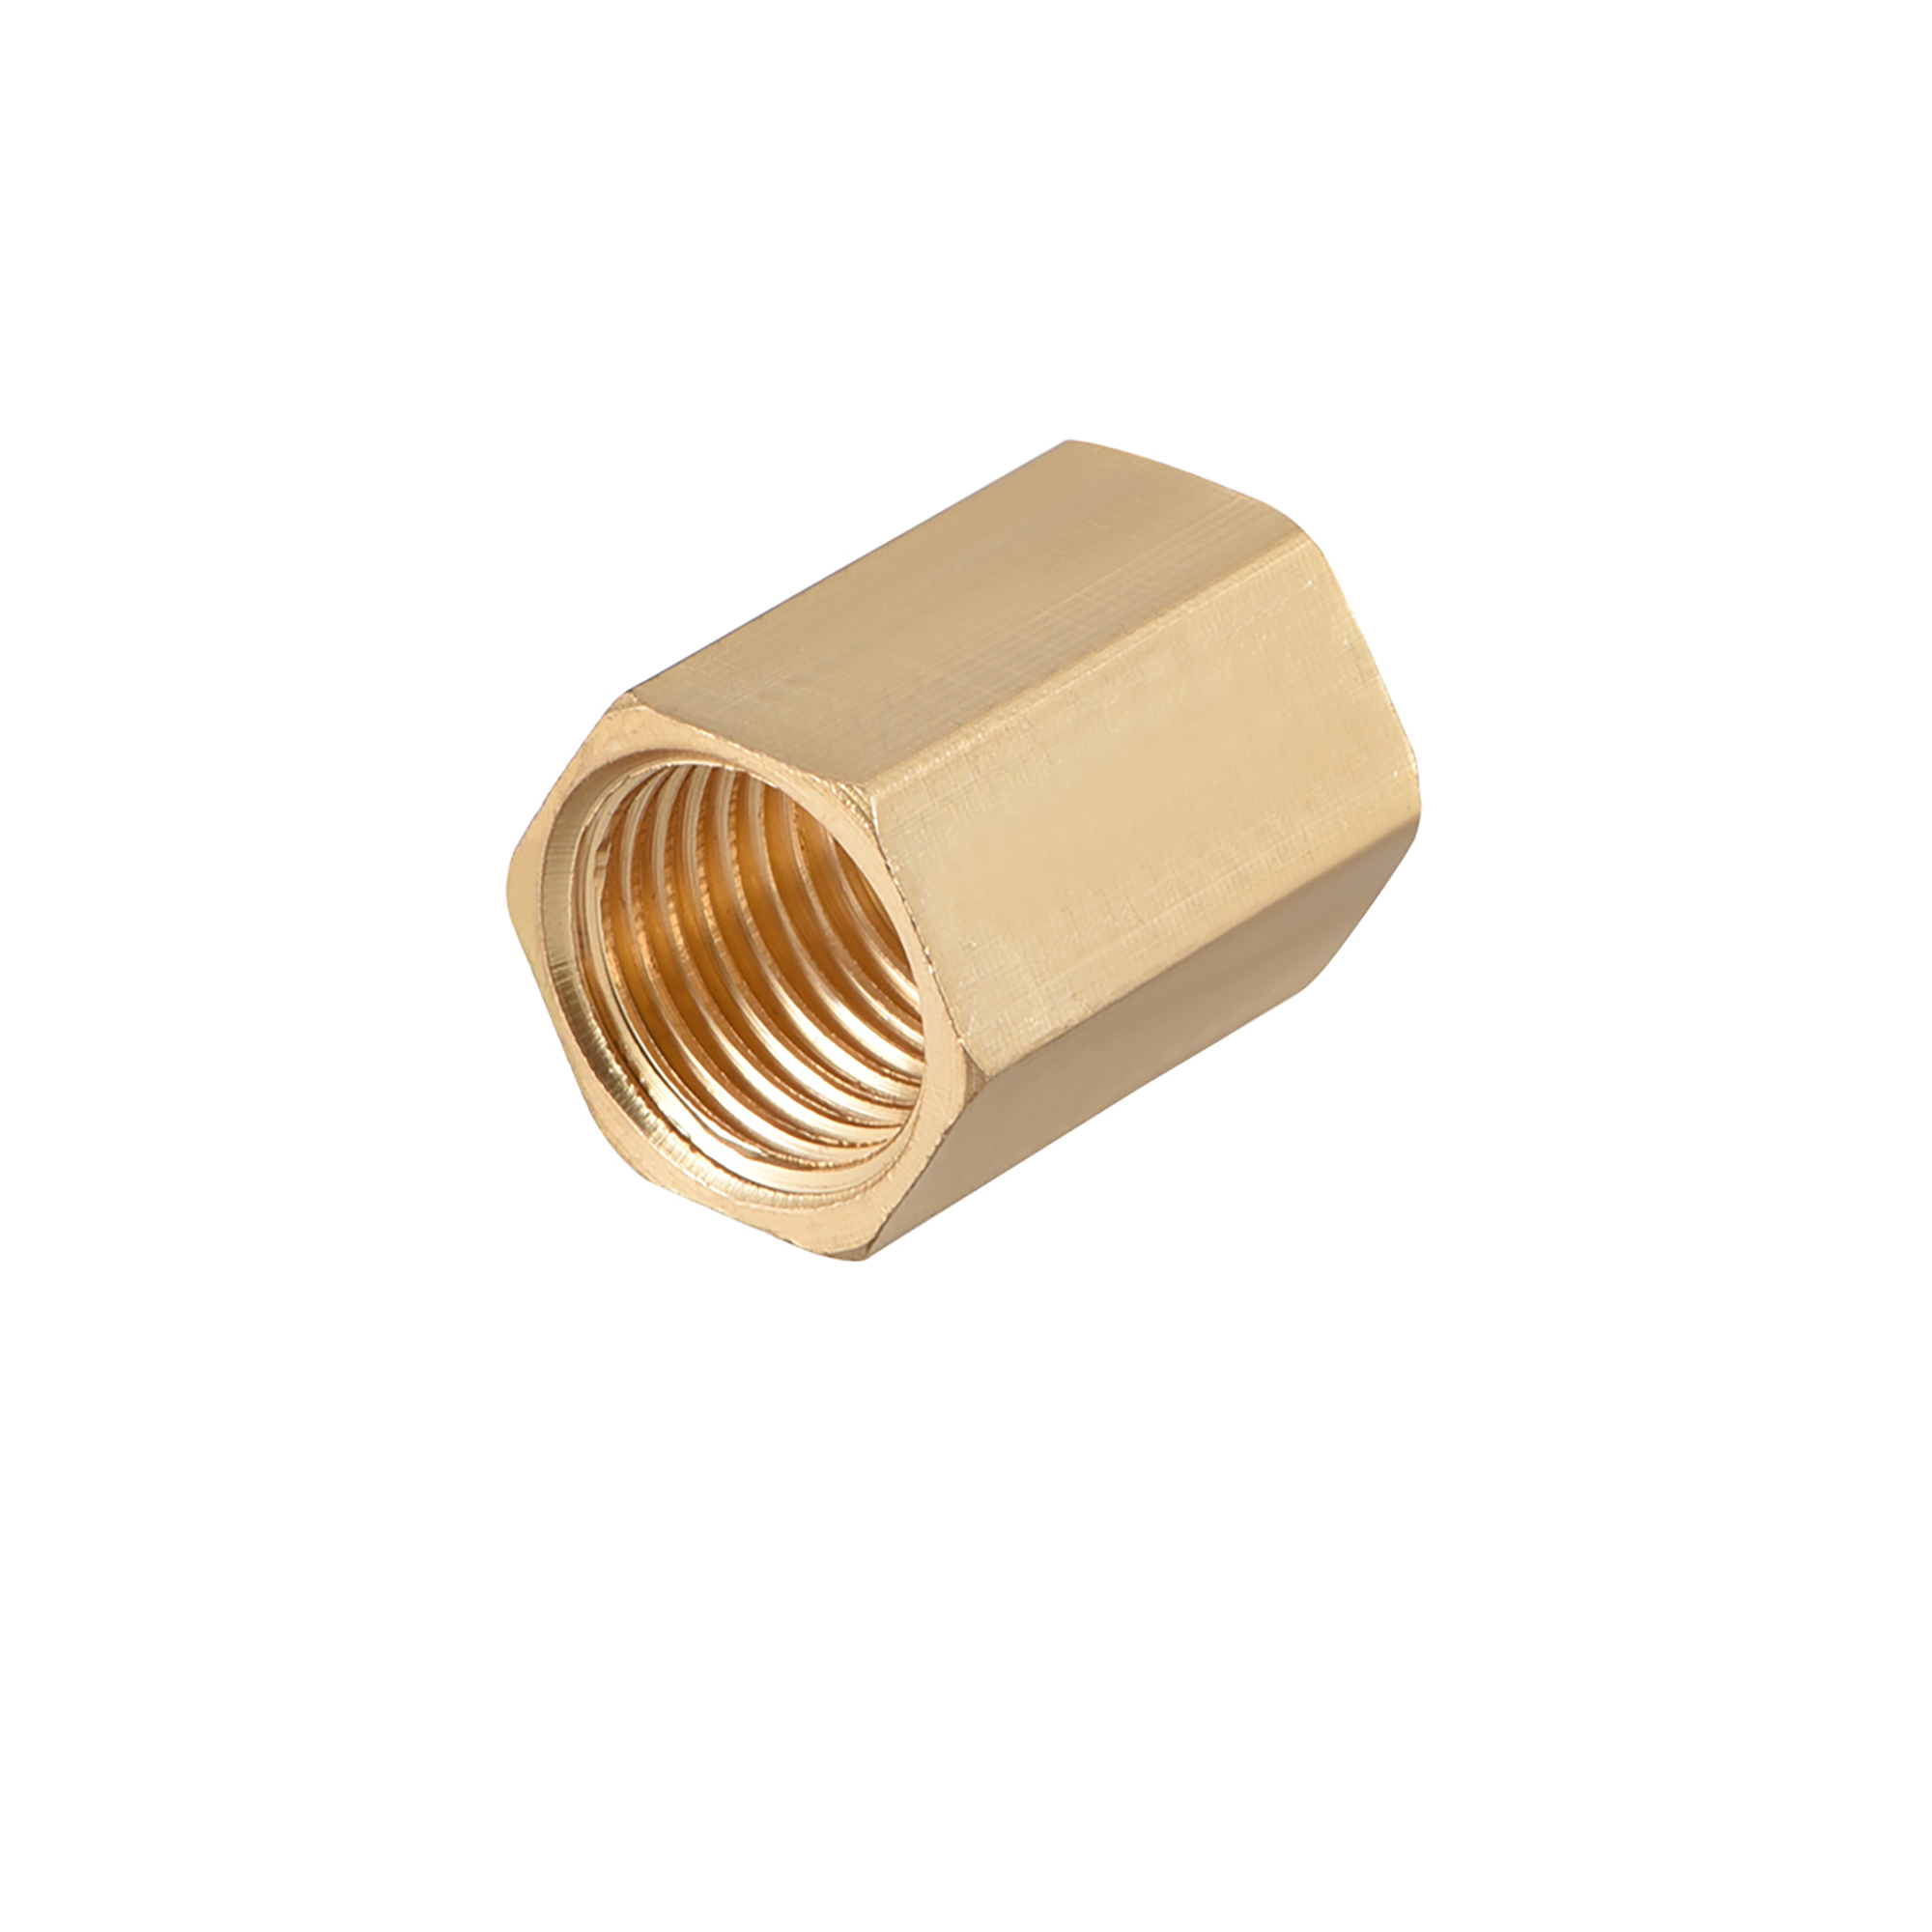 """Brass Pipe Fitting, 1/4"""" G Female Thread Straight Brass Hex Rod Pipe Fitting Coupling - image 1 de 4"""